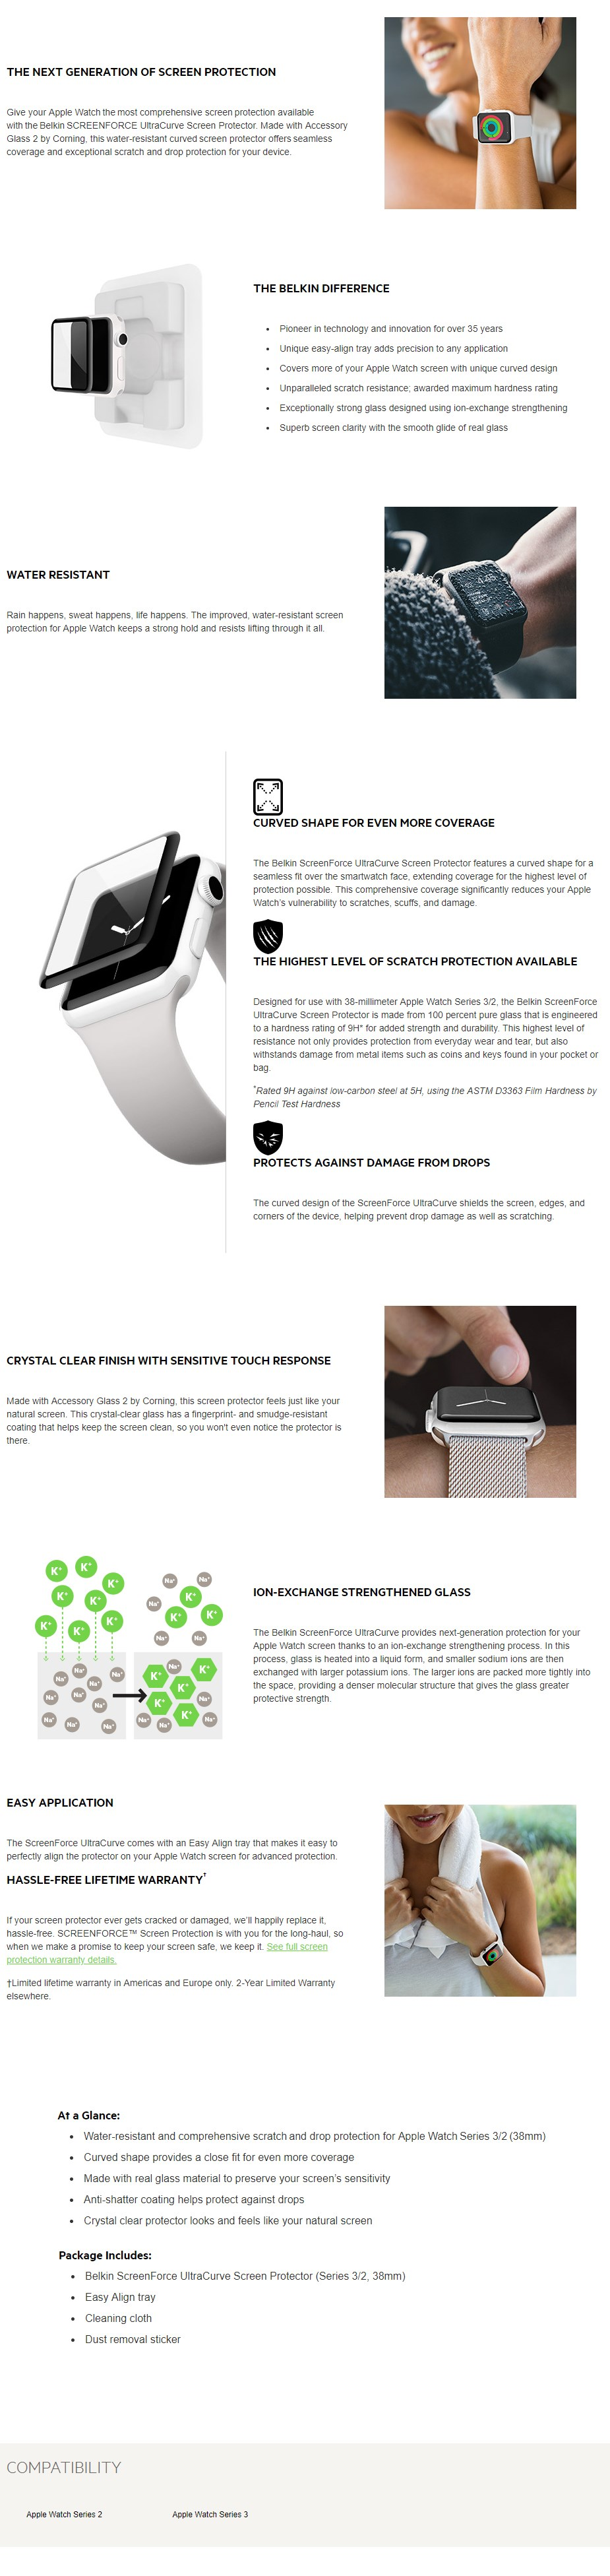 Belkin Screenforce UltraCurve Screen Protection for Apple Watch Series 2/3 - 38m - Overview 1